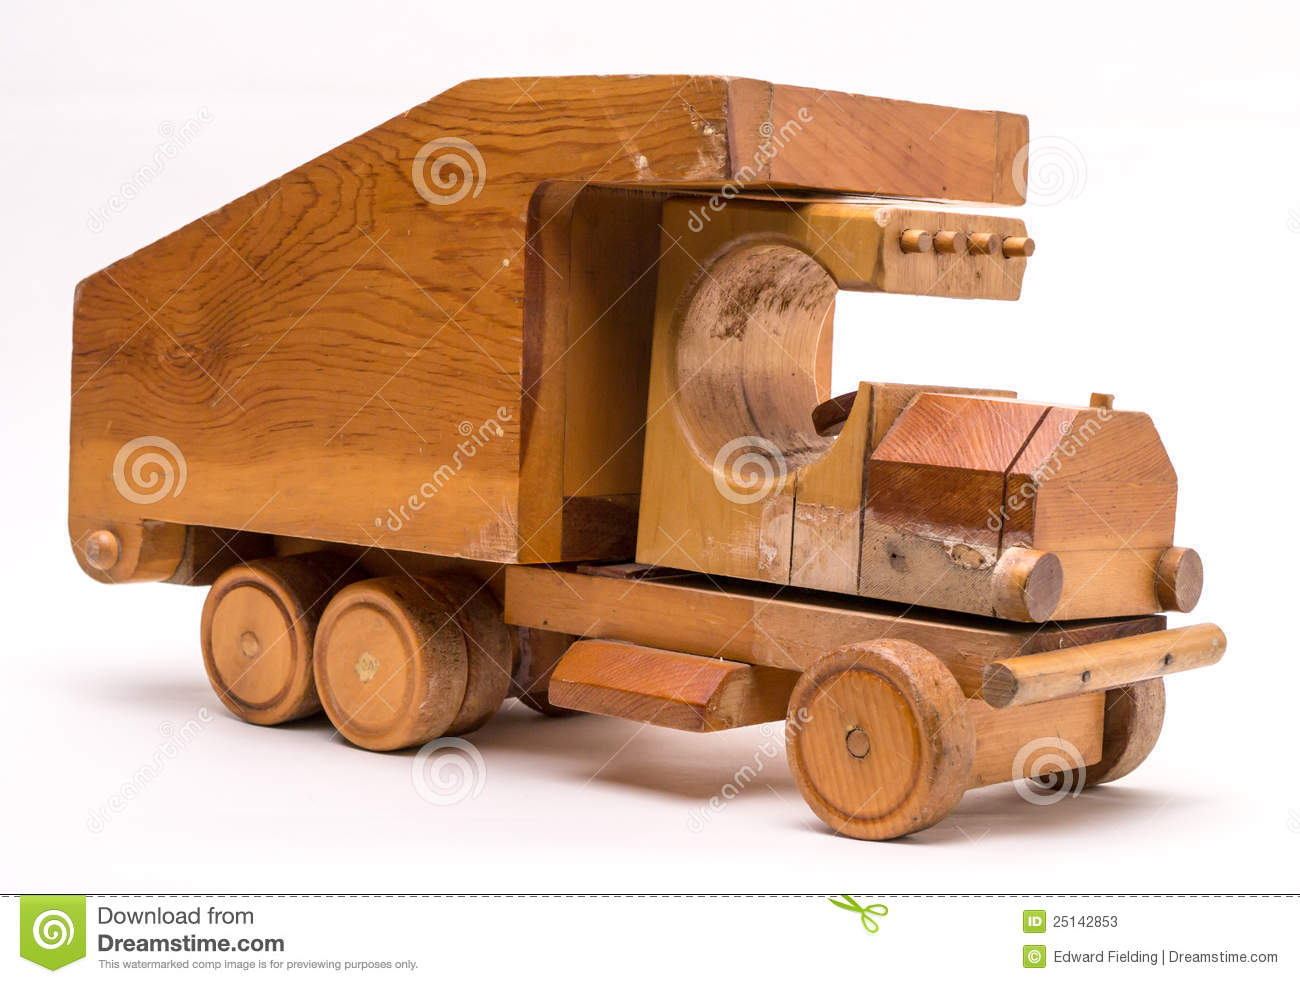 Wooden Toy Trucks Old wooden toy truck